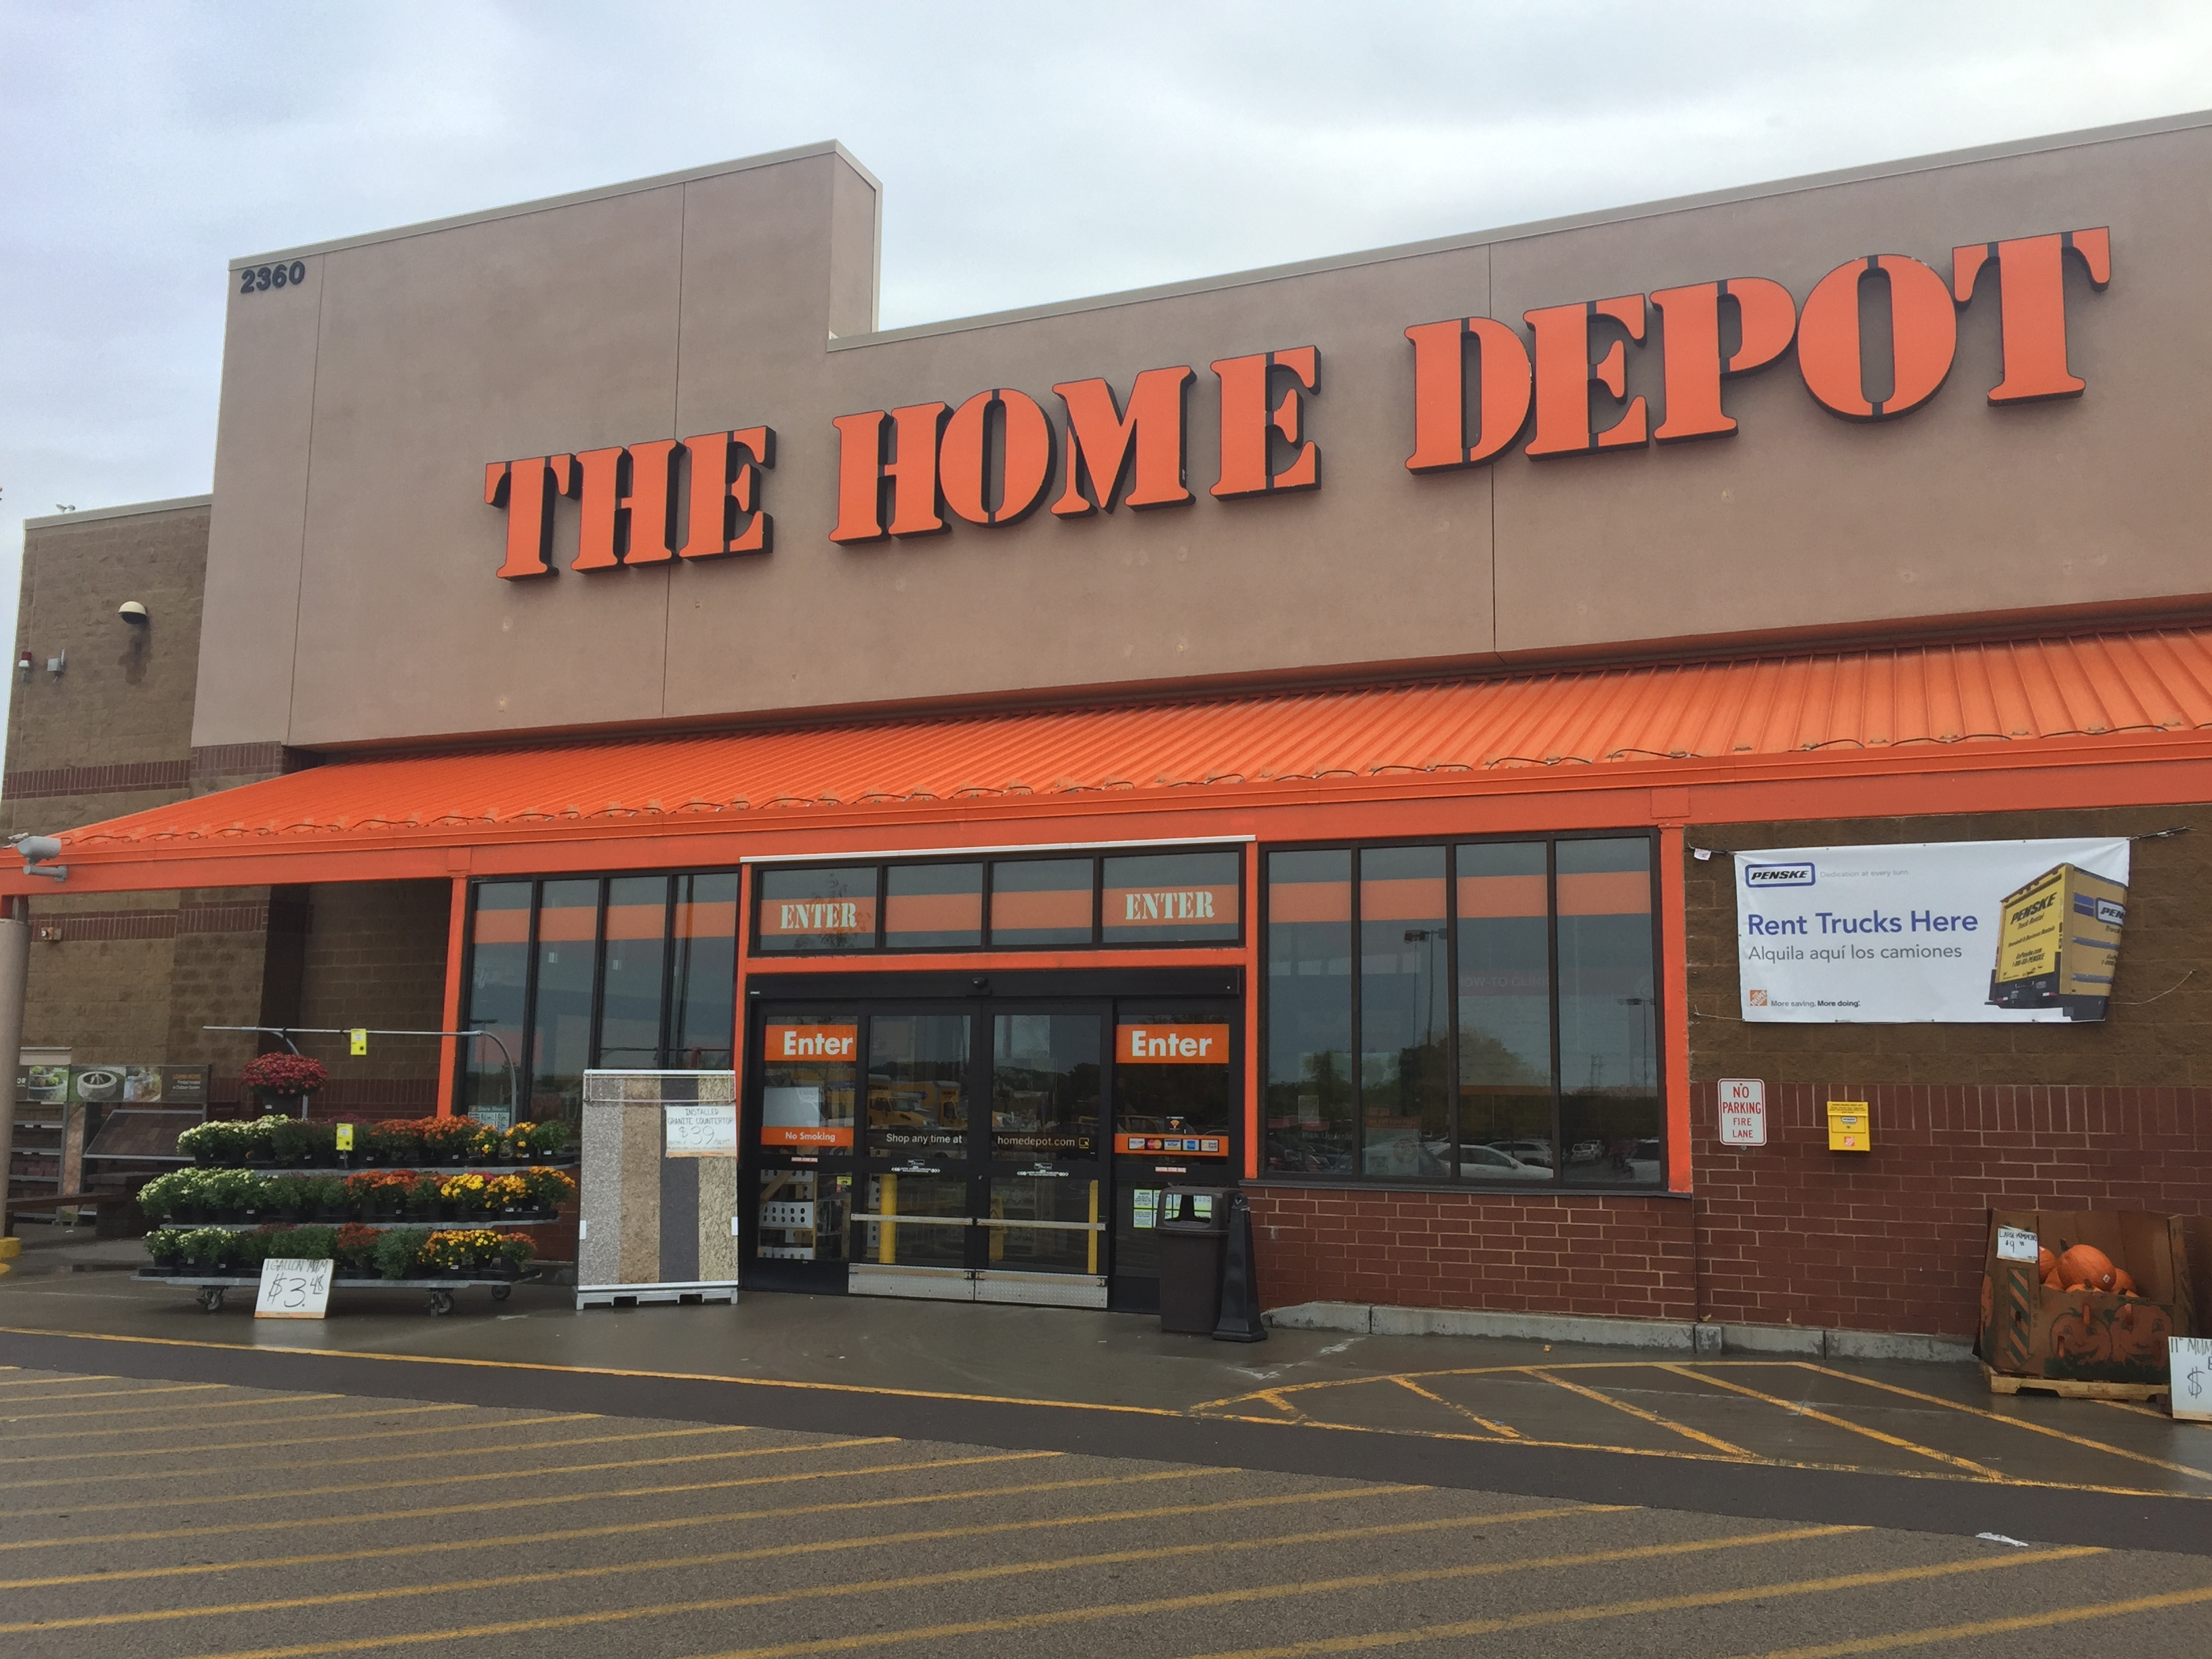 Home Depot Maplewood 28 Images Home Depot Maplewood 28 Images The Home Depot 17 Home Depot